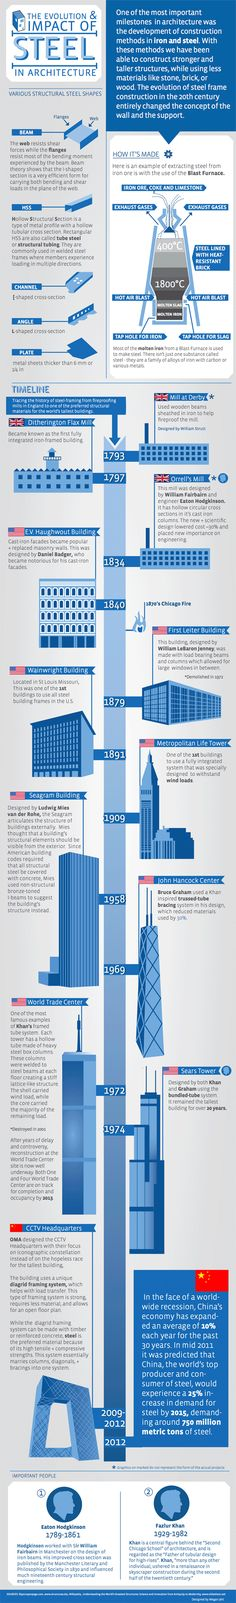 The Evolution & Impact of Steel in Architecture, Archdaily Infographic // for keepsake.